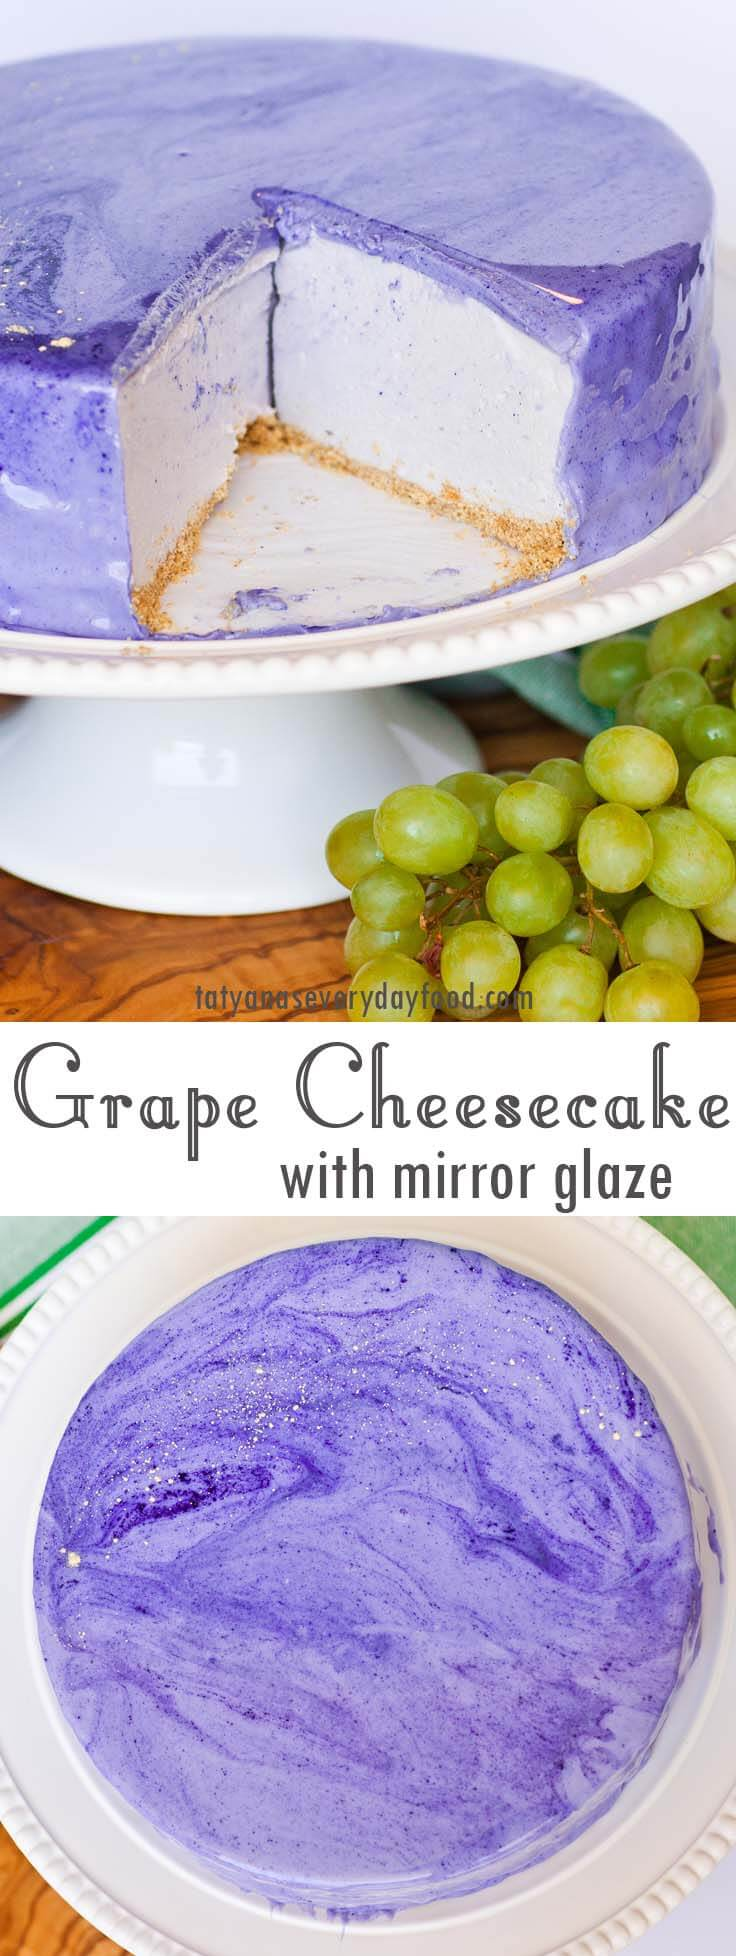 No-Bake Grape Cheesecake video recipe